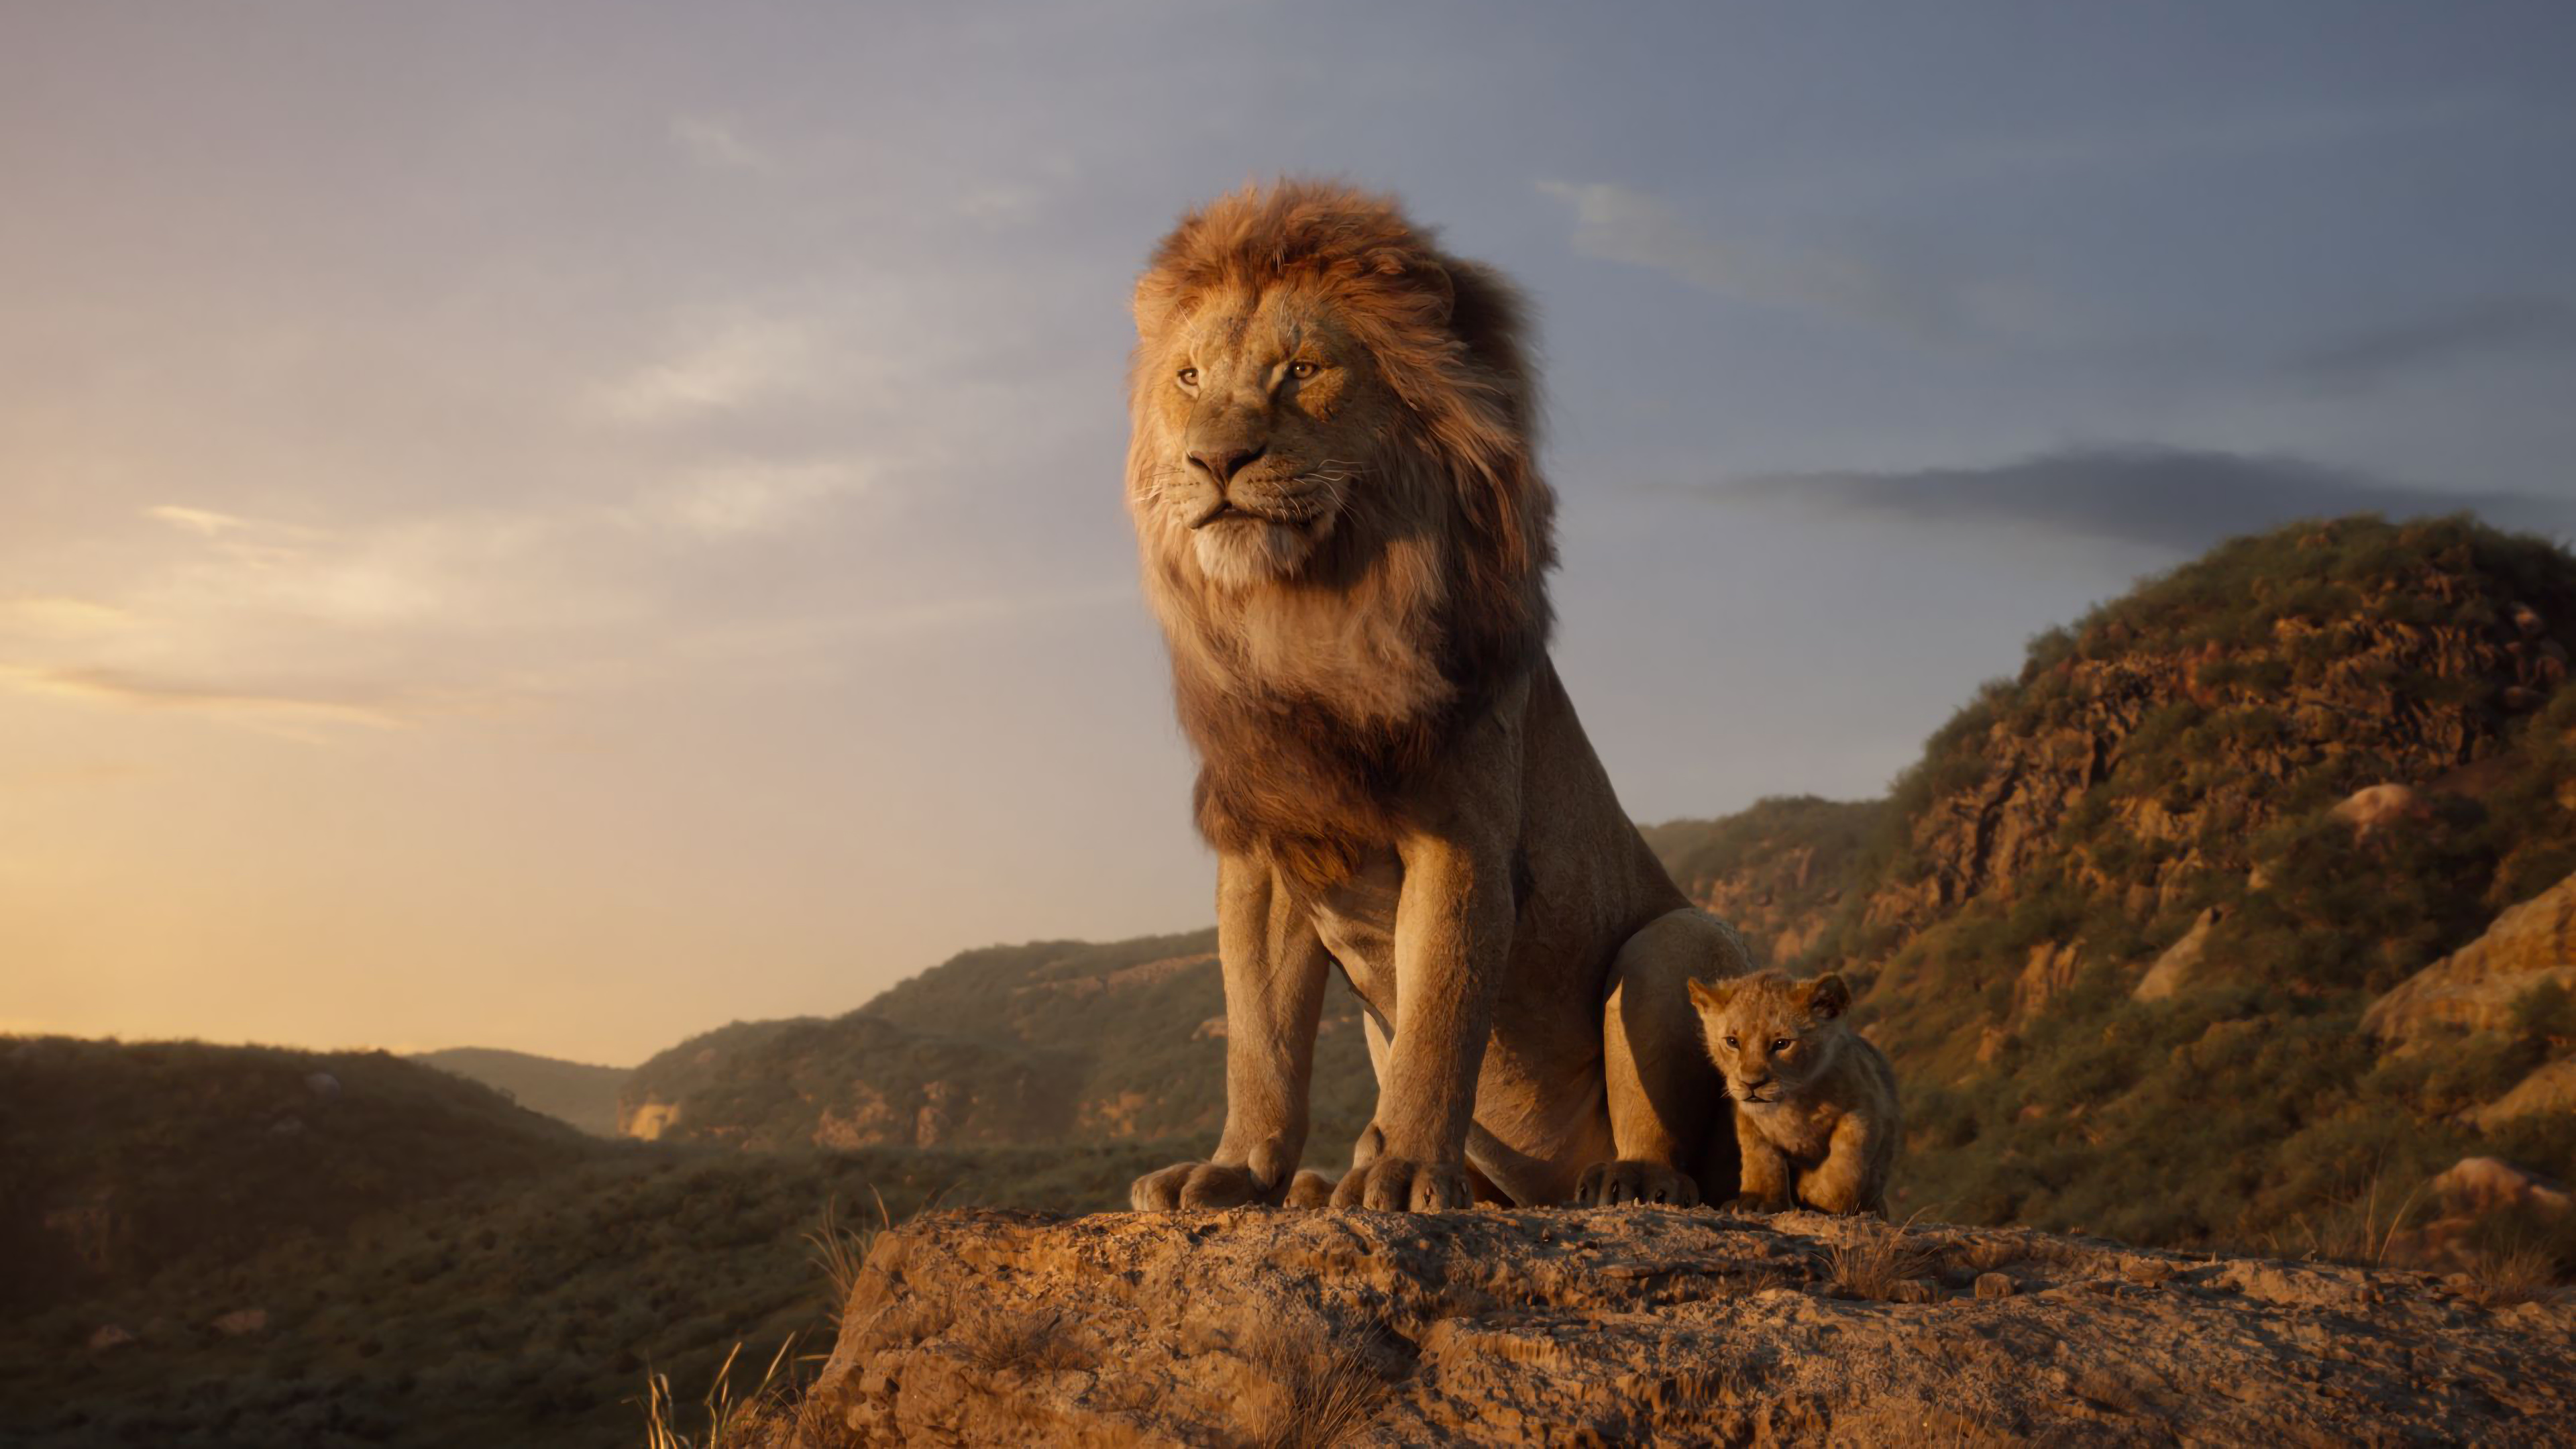 The Lion King 2019 Mufasa Simba 4k Wallpaper 18